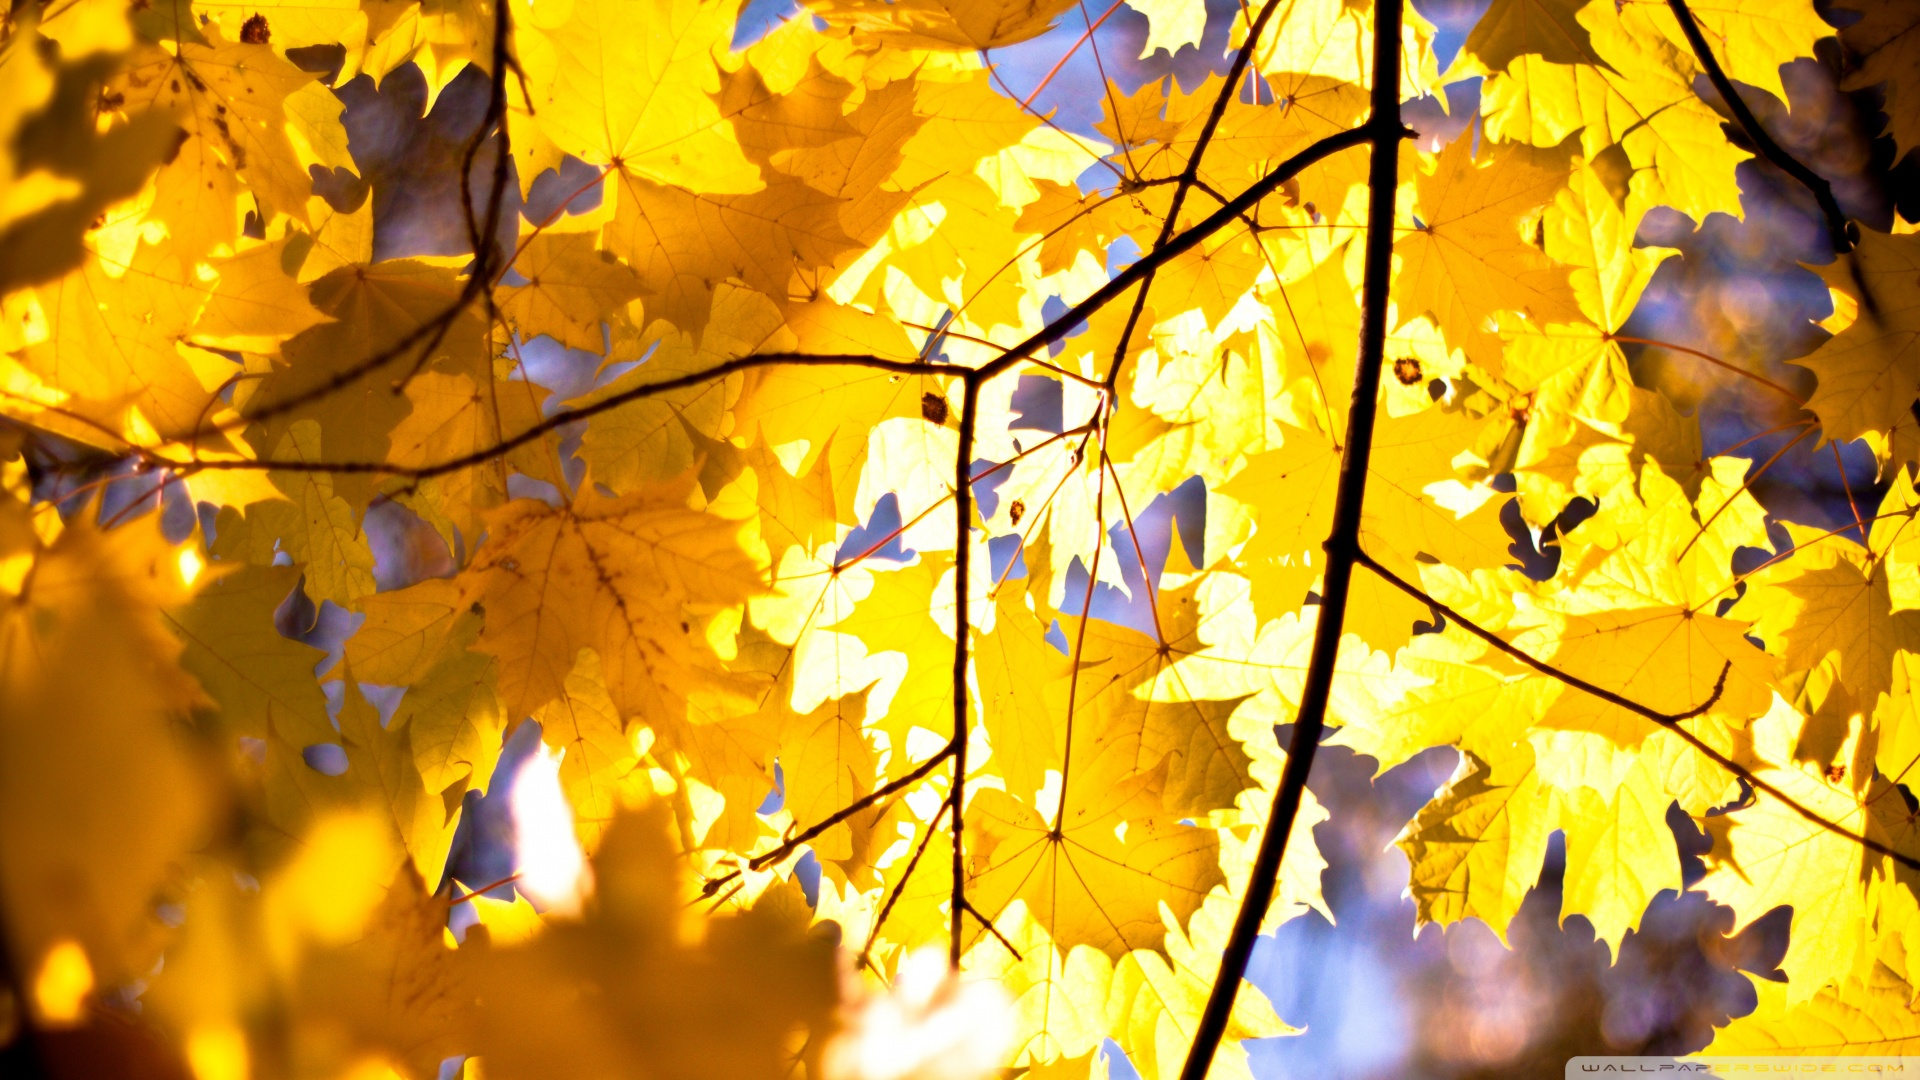 Download Yellow Maple Leaves 2 Wallpaper 1920x1080 | Wallpoper #450634